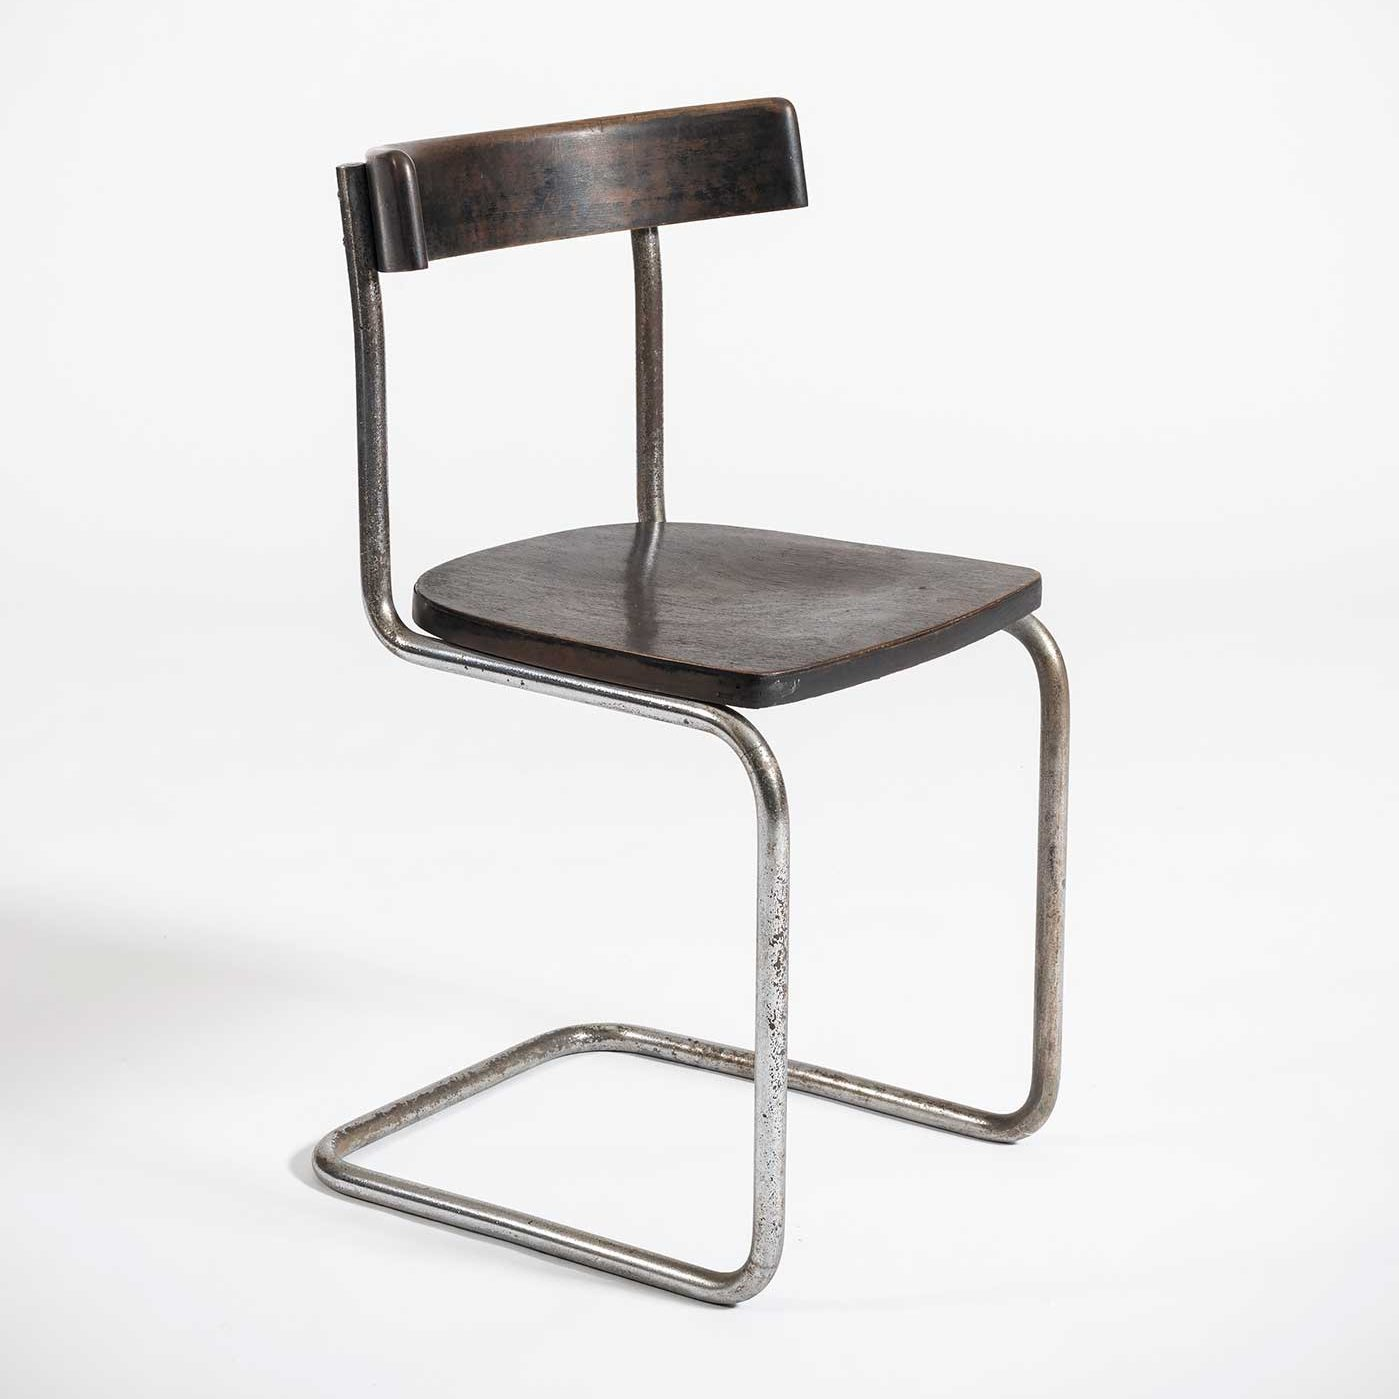 Giuseppe Pagano Pogatschnig |                                  Chair